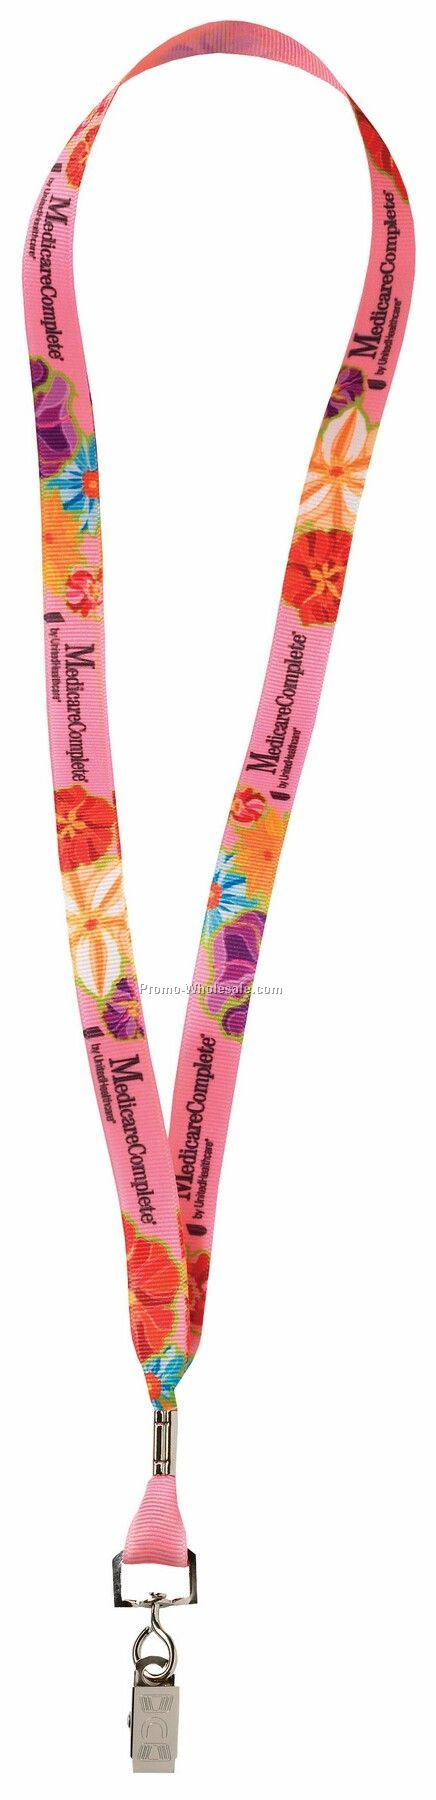 "5/8"" Full Color Poly Ribbon Lanyards With O-ring Attachment - Next Day"